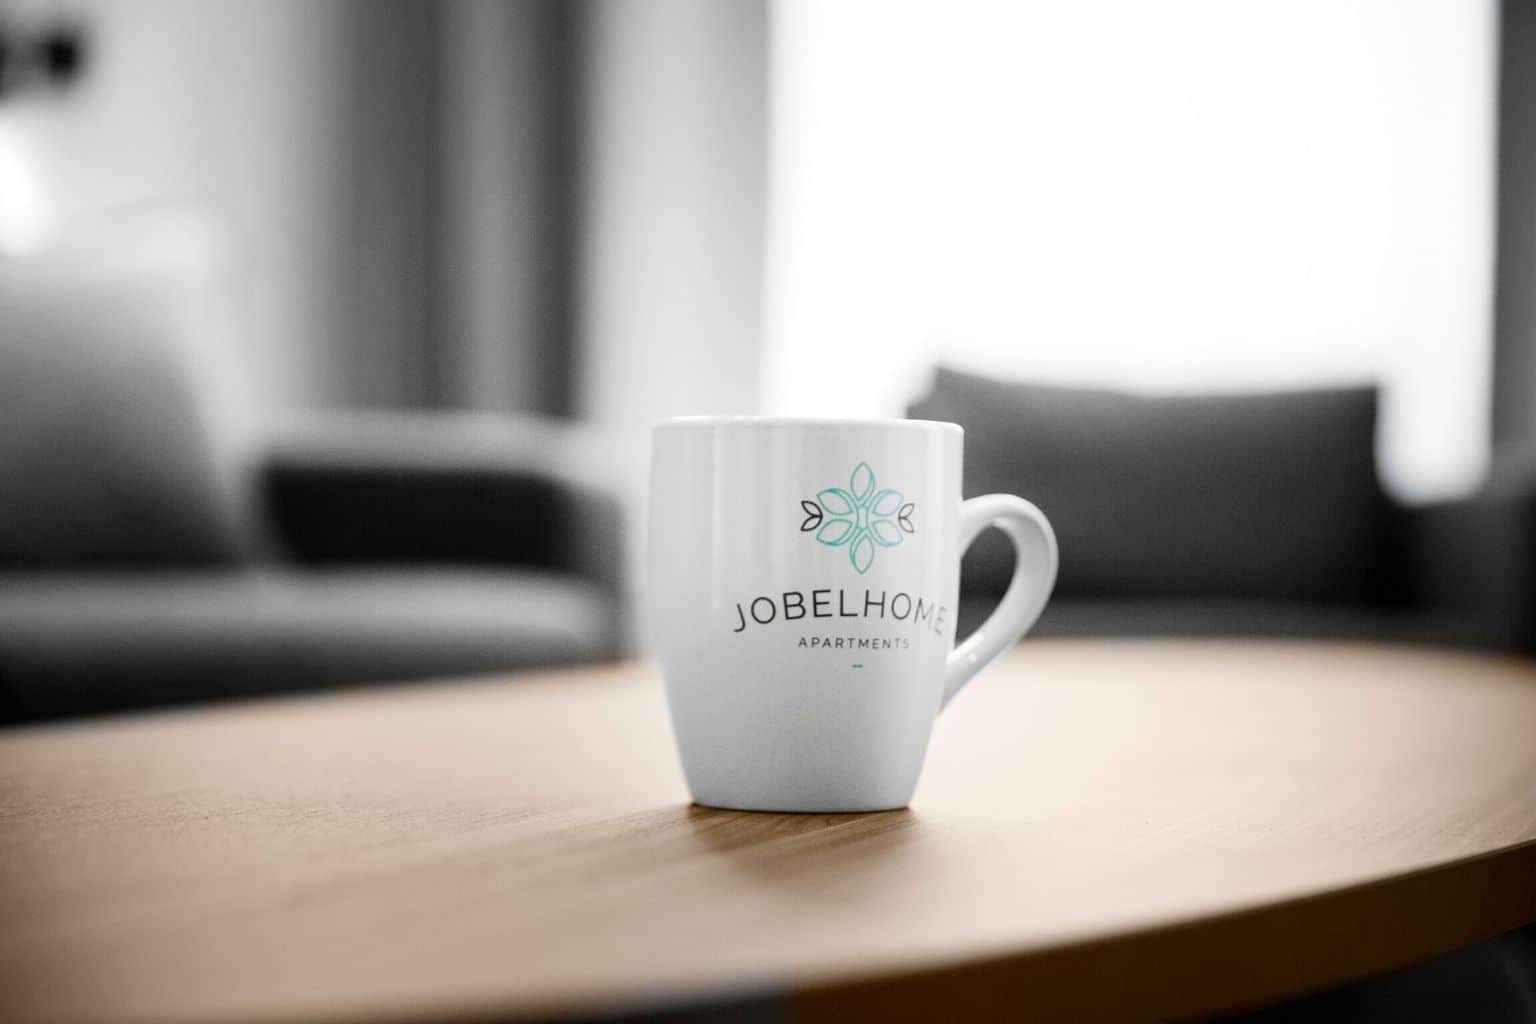 Take a soul warming sip from a Jobelhome mug and feel like you are at home